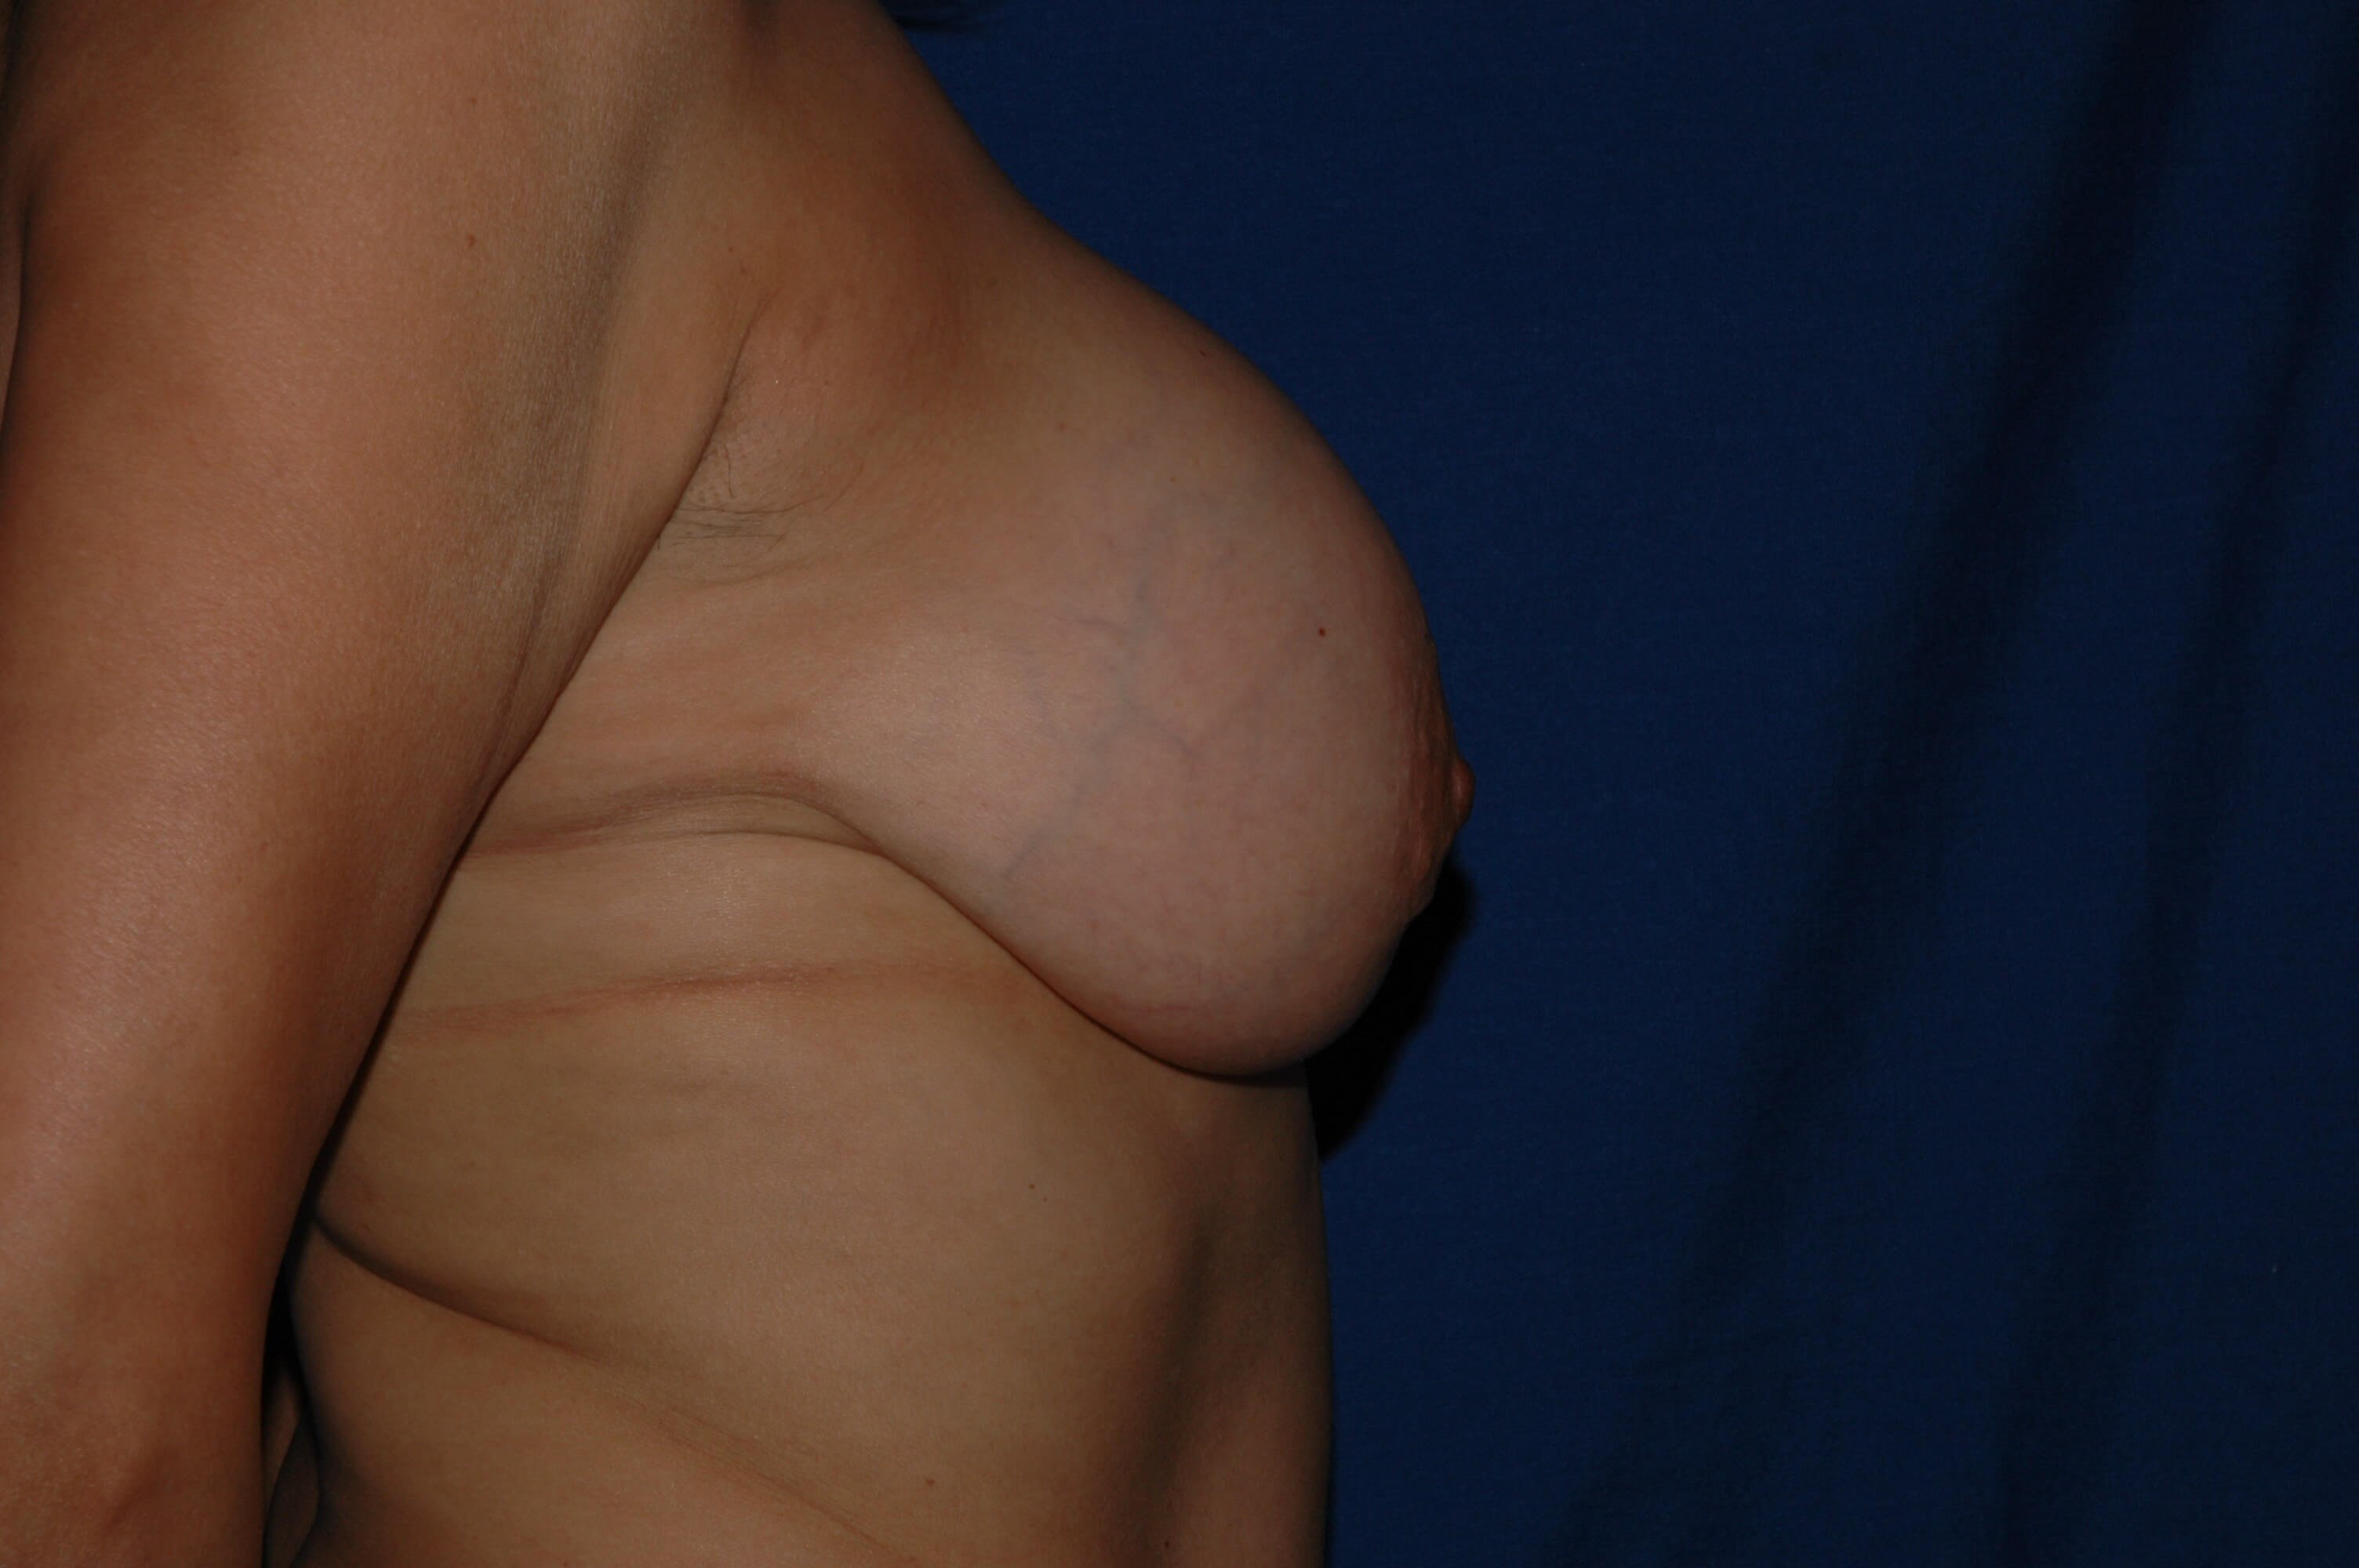 Newport Beach Breast Lift &Aug After Side View